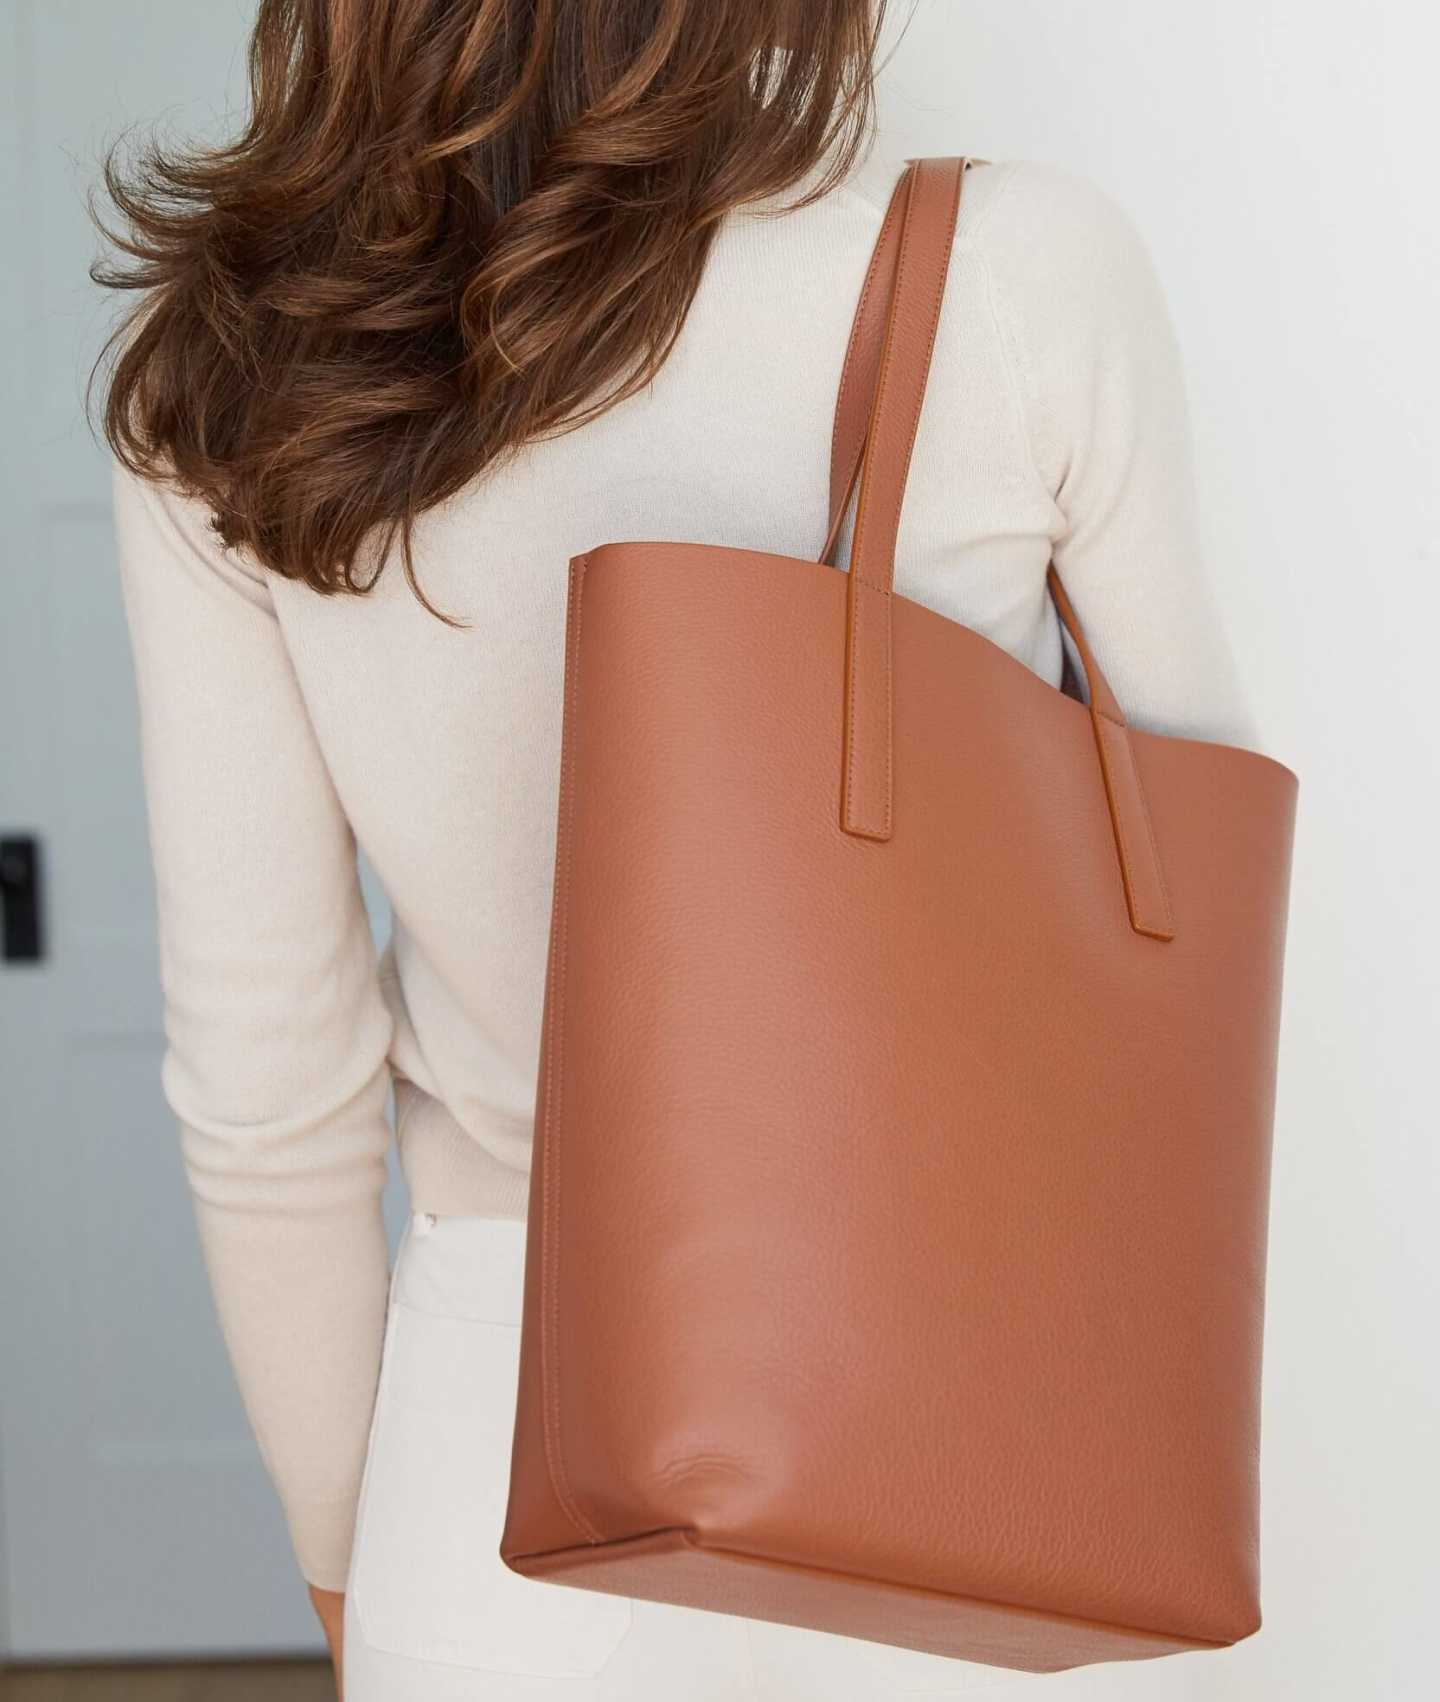 Tall Italian Leather Tote - Cognac - 6